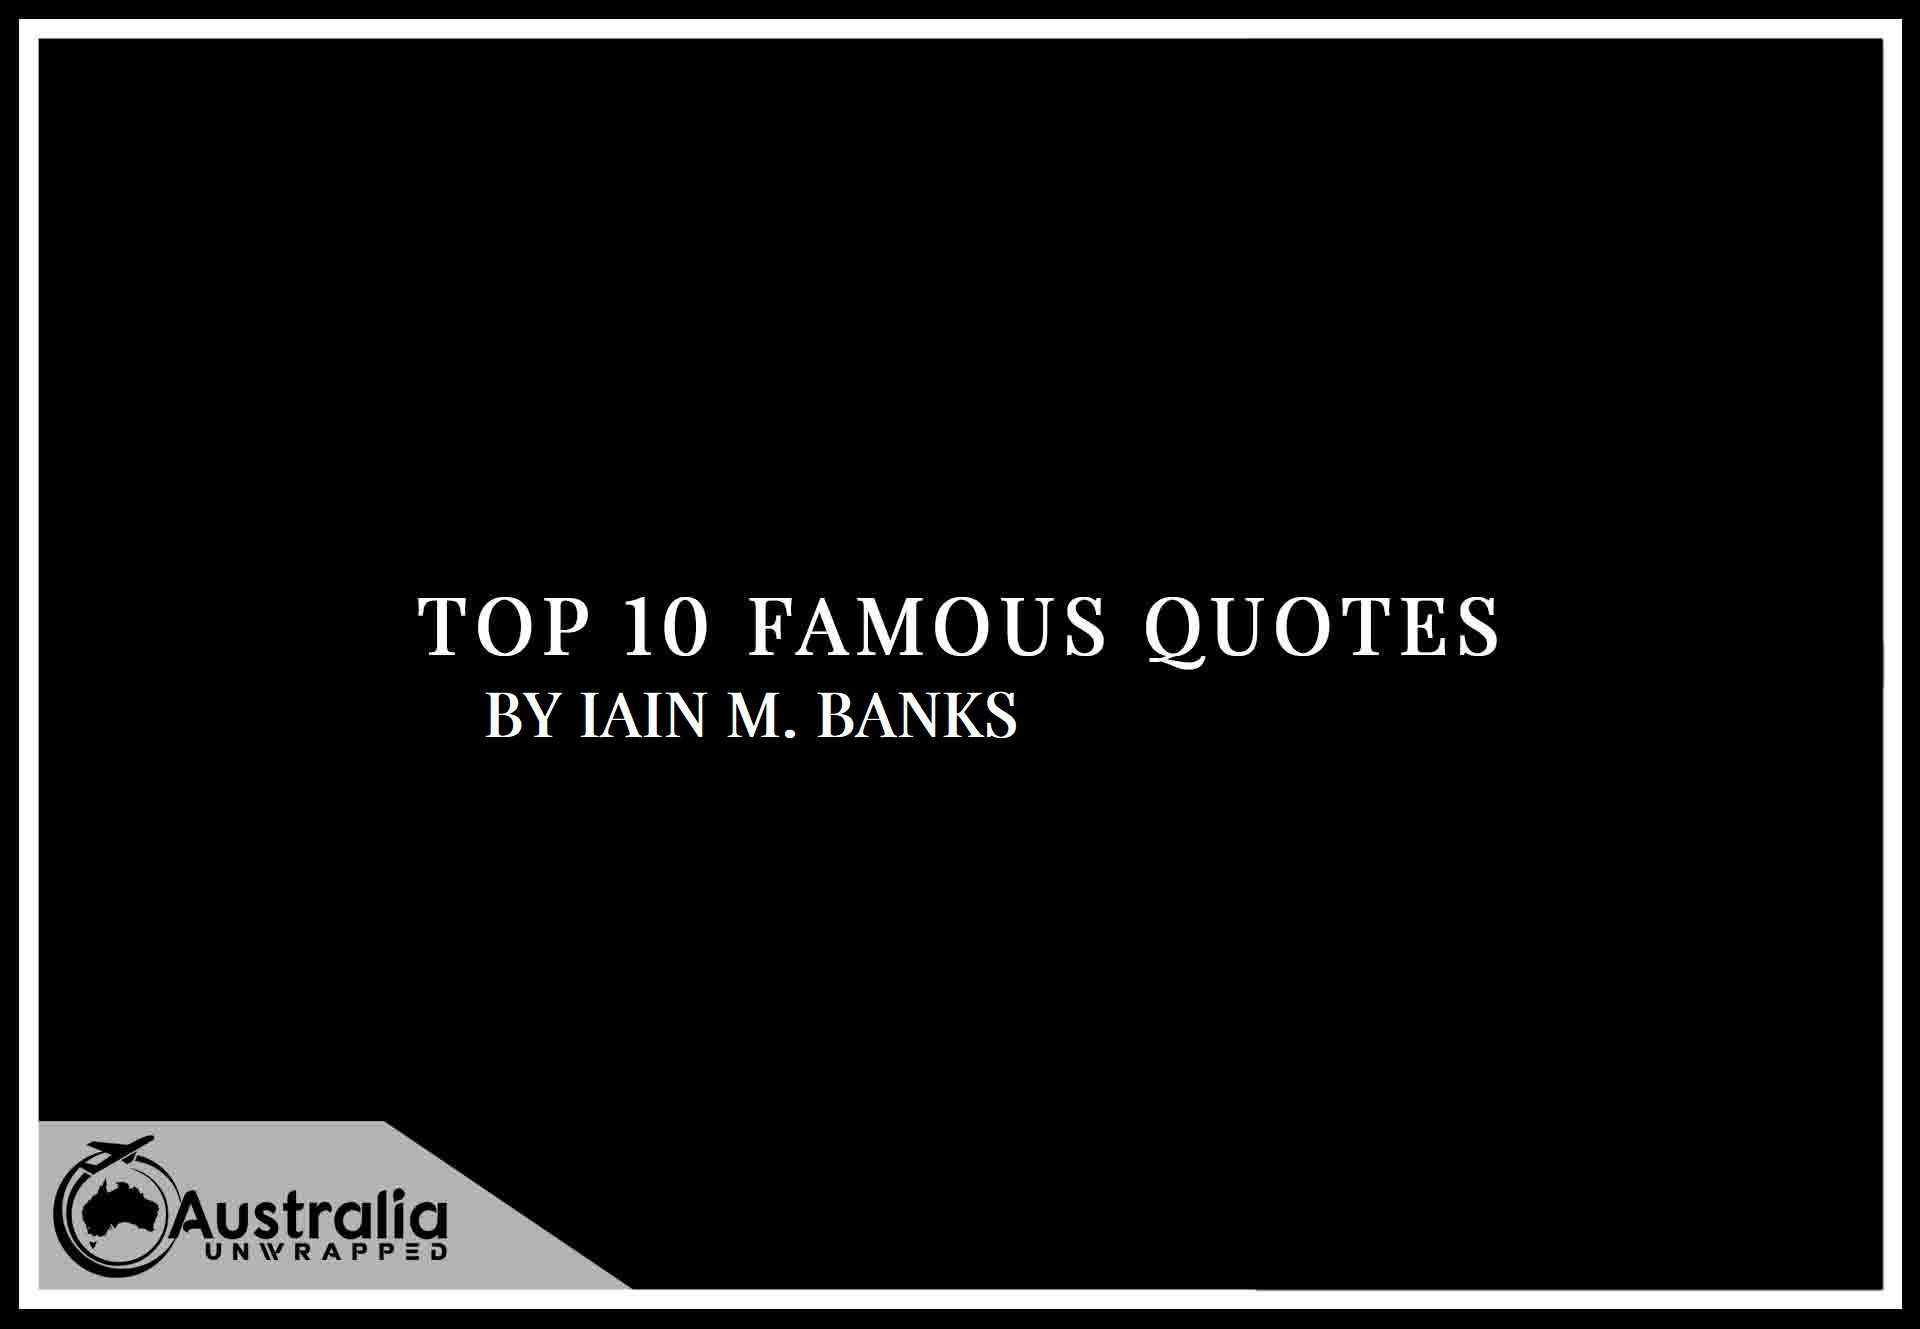 Top 10 Famous Quotes by Author Iain M. Banks